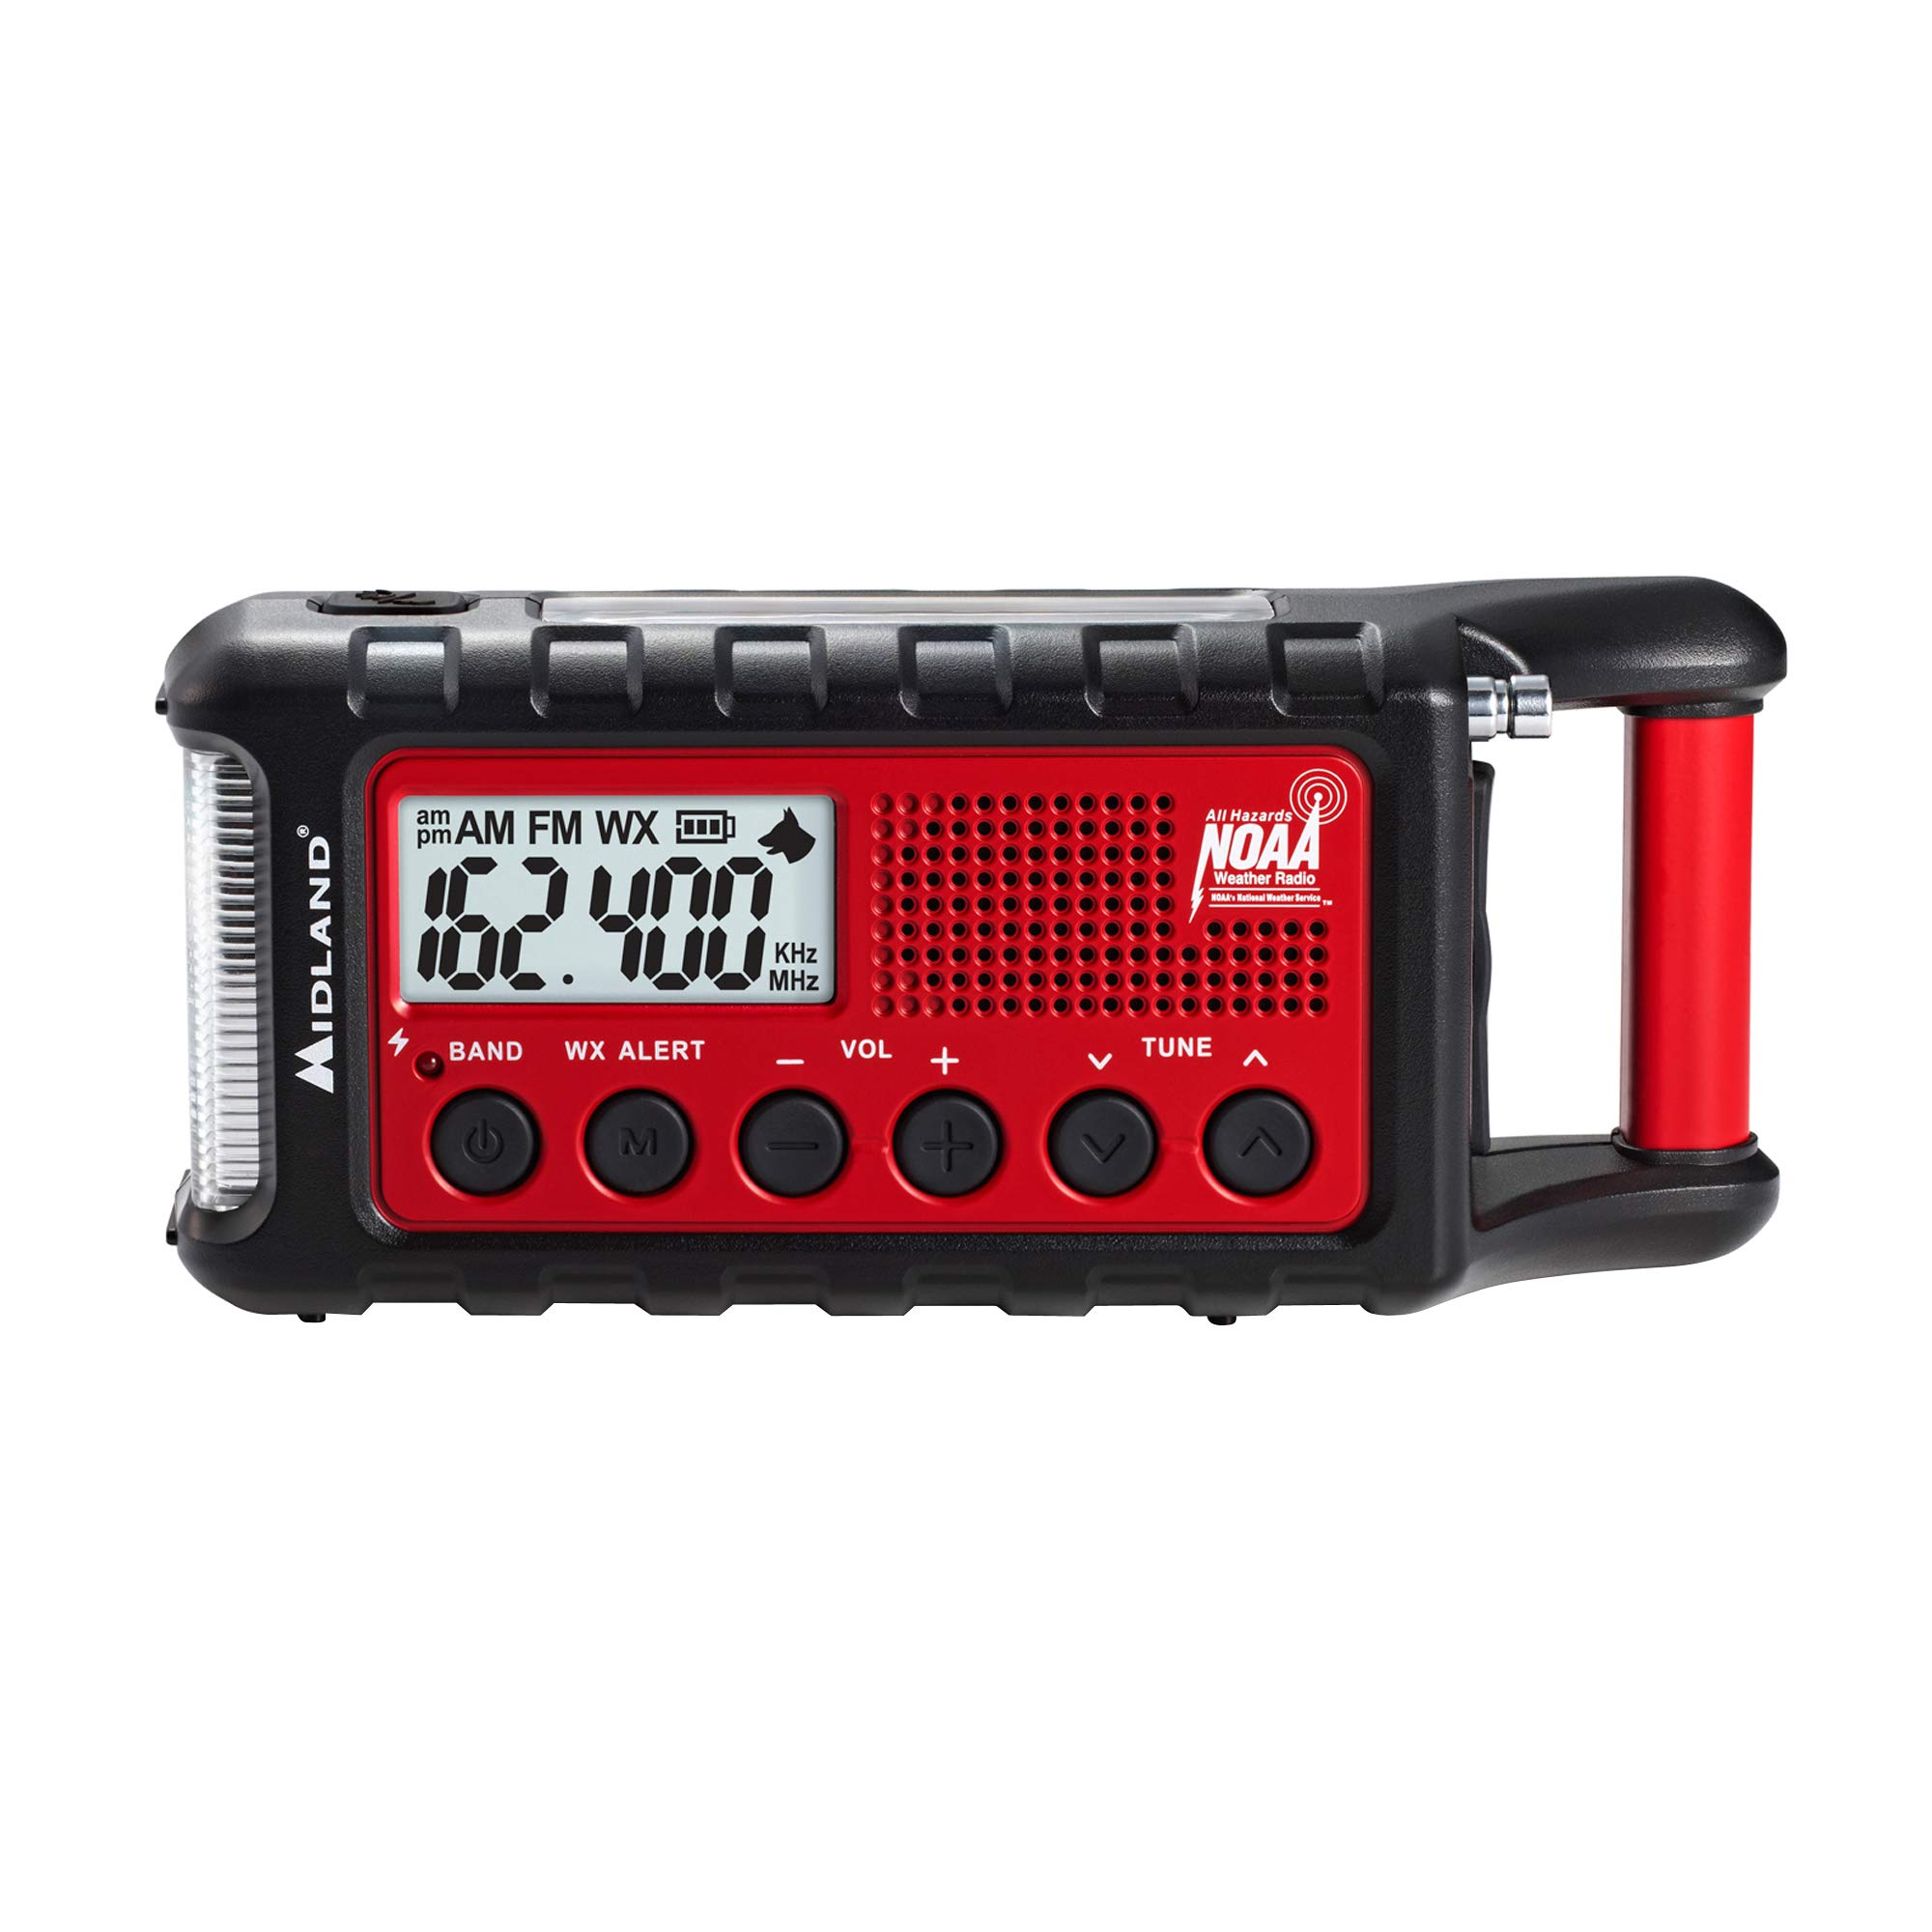 Midland - ER310, Emergency Crank Weather AM/FM Radio - Multiple Power Sources, SOS Emergency Flashlight, Ultrasonic Dog Whistle, NOAA Weather Scan + Alert (Red/Black)